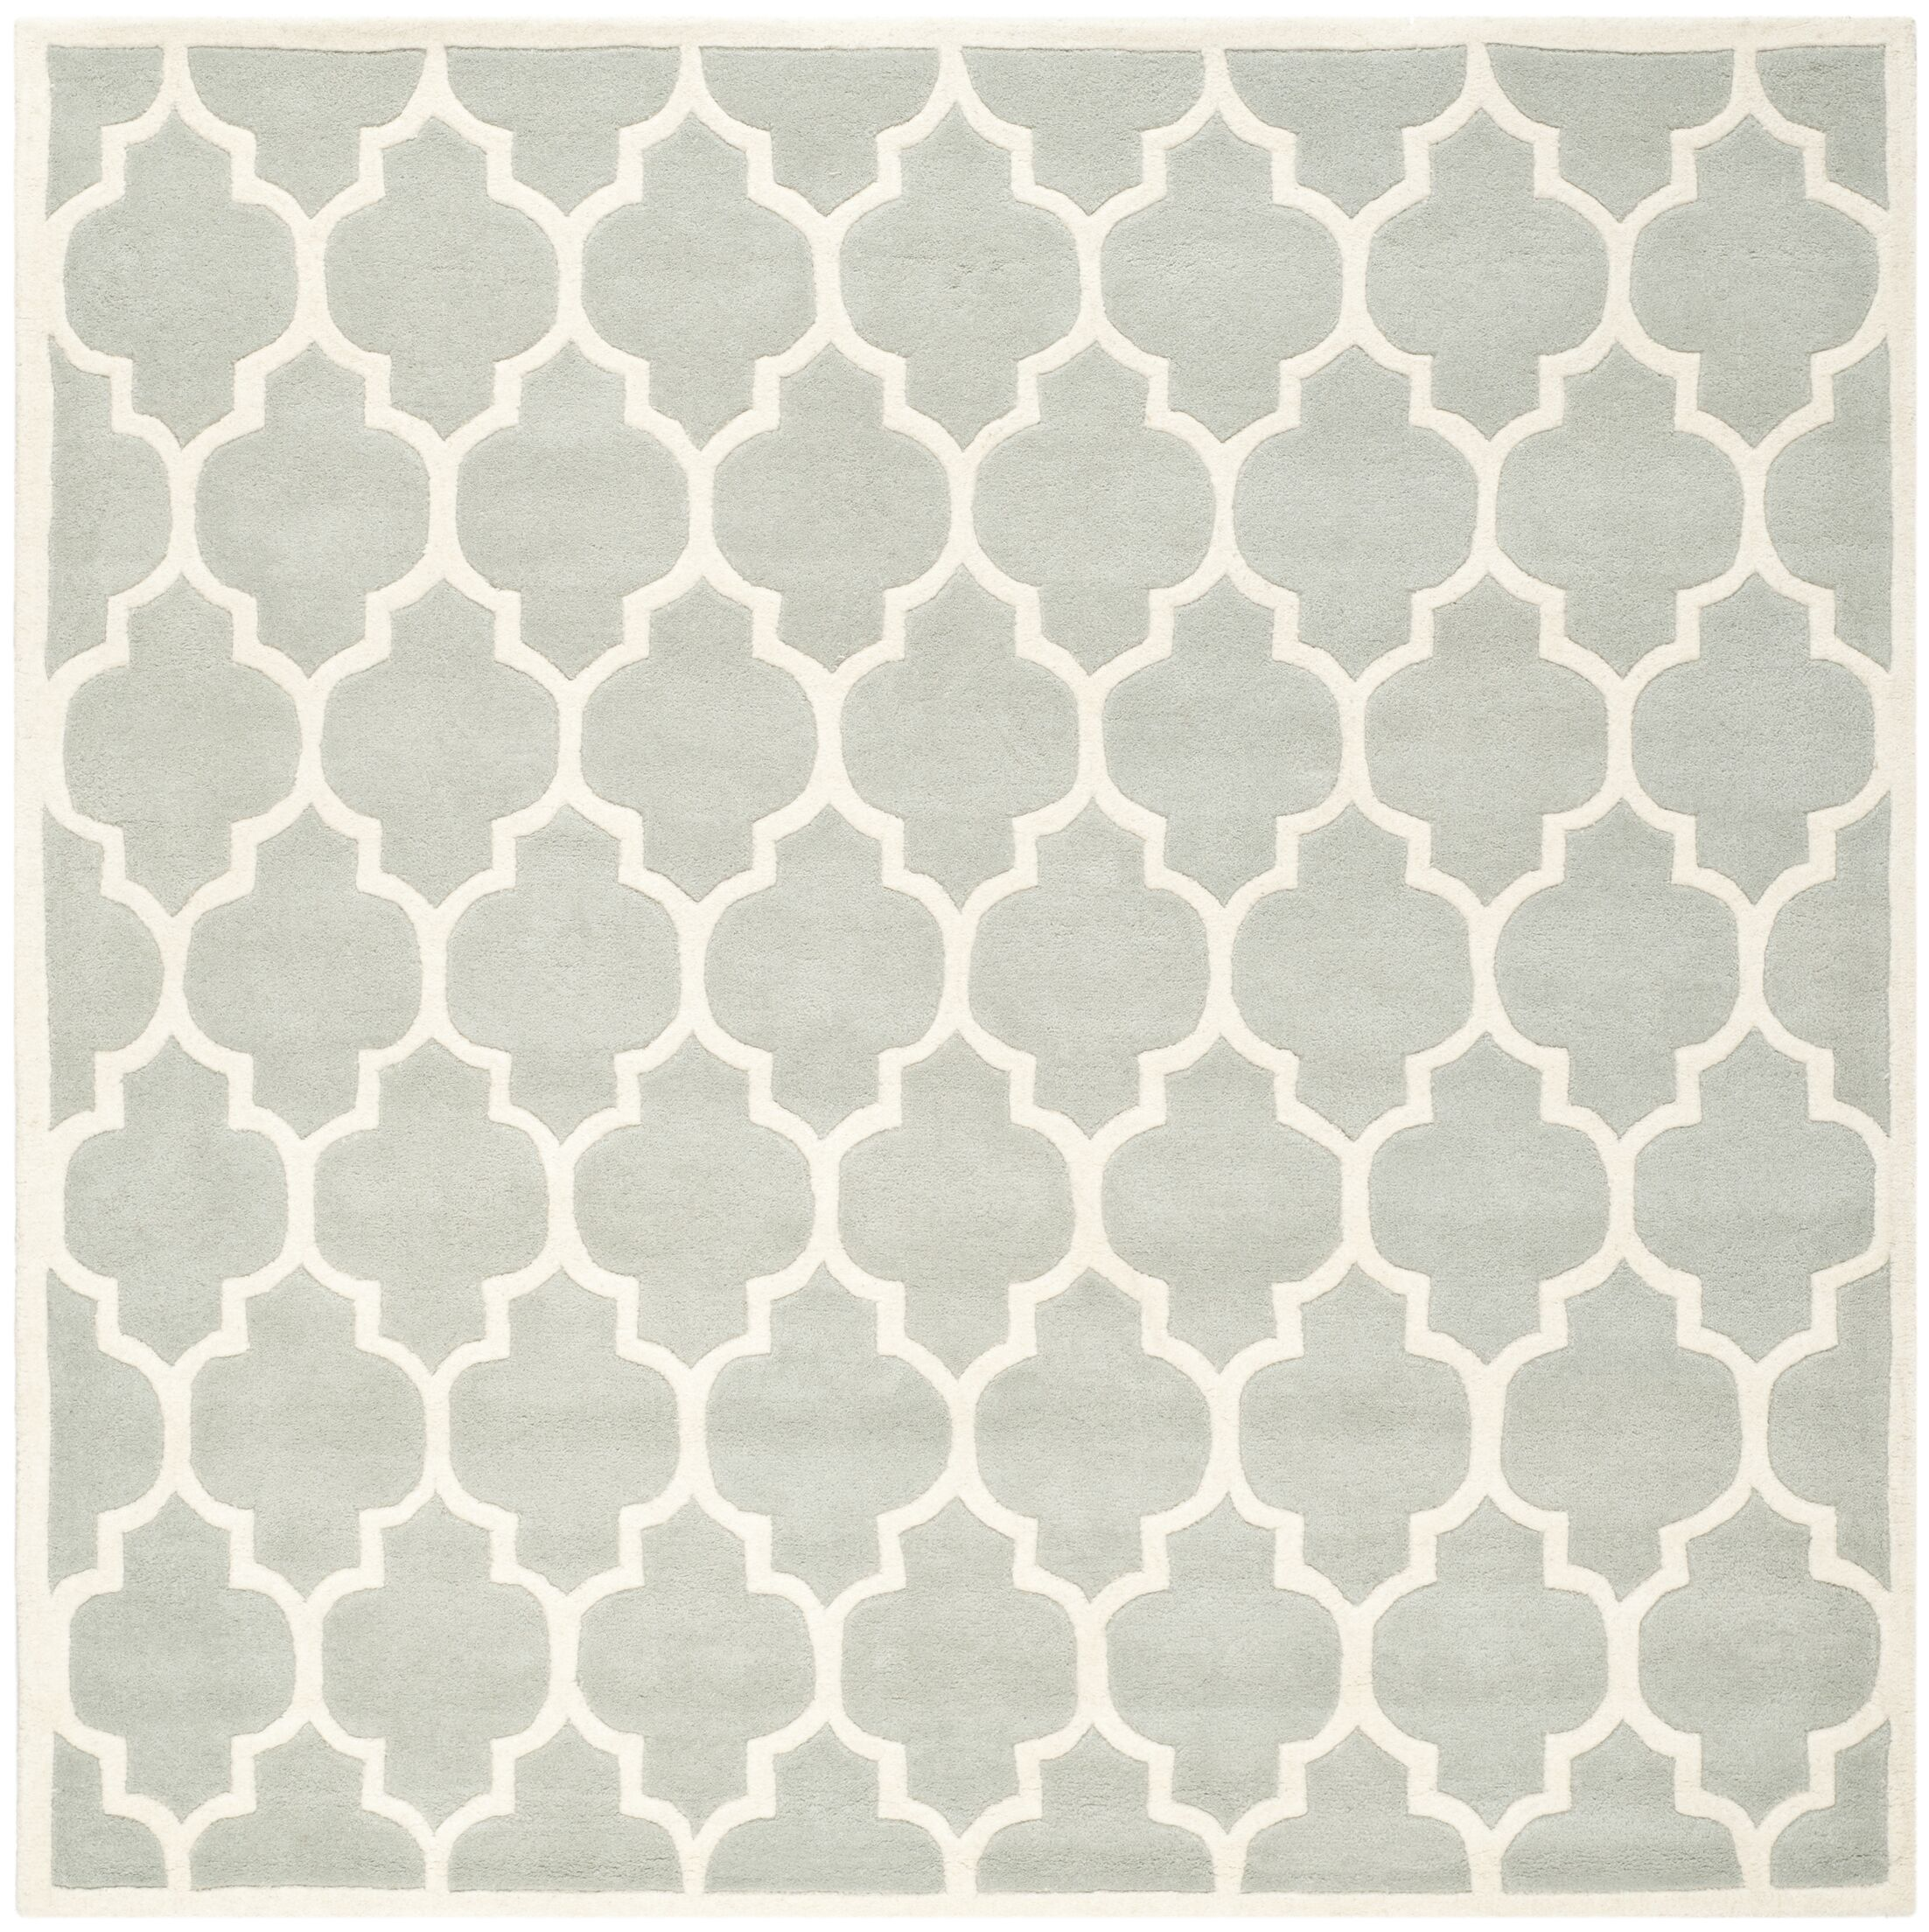 Wilkin Hand-Tufted Wool Gray/Ivory Area Rug Rug Size: Square 8'9